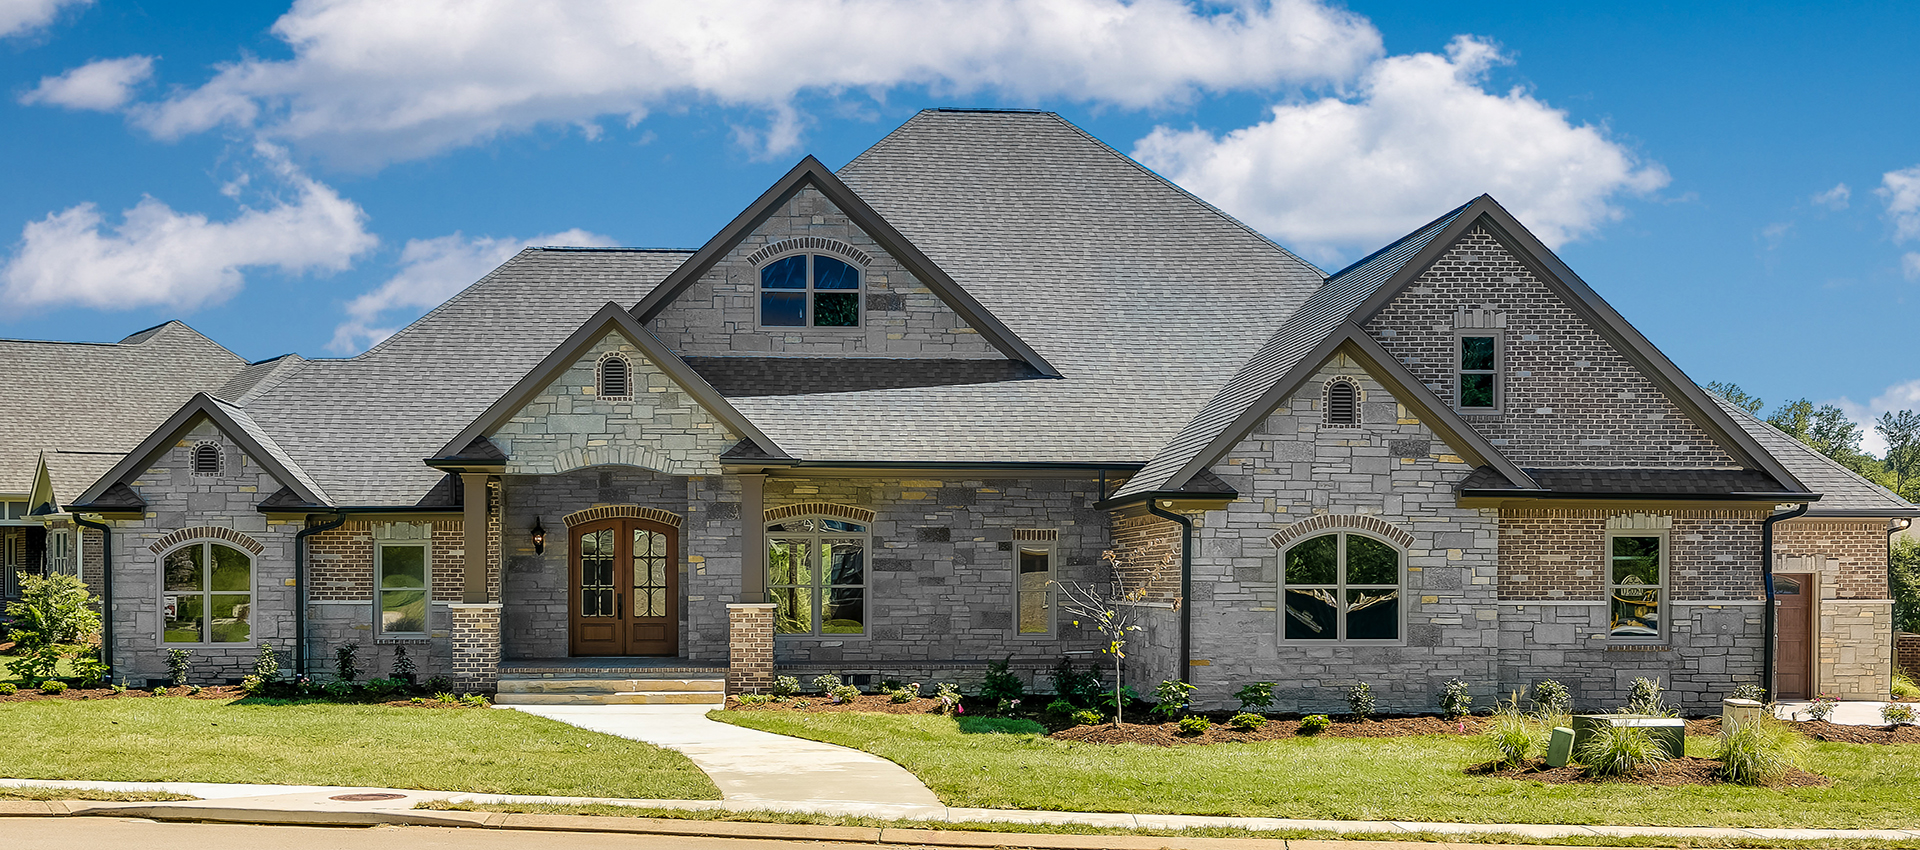 Tips for building a new custom home mccoy homes for Custom home builders chattanooga tn